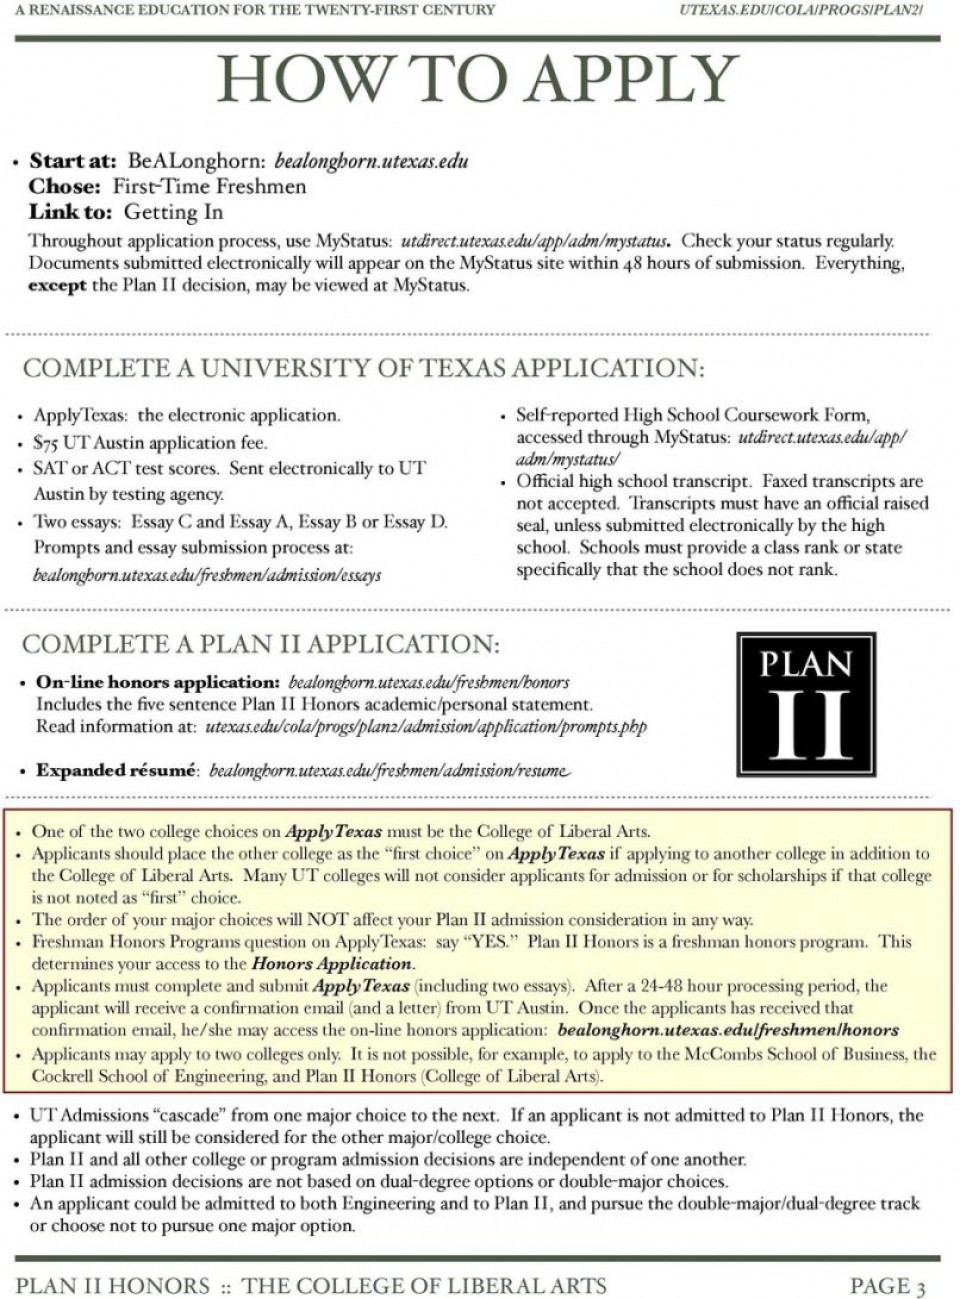 004 Essay Example Applytexas Prompts Poemdoc Or Apply Texas Topic Examples P Top Essays 2019 That Worked Word Limit 960